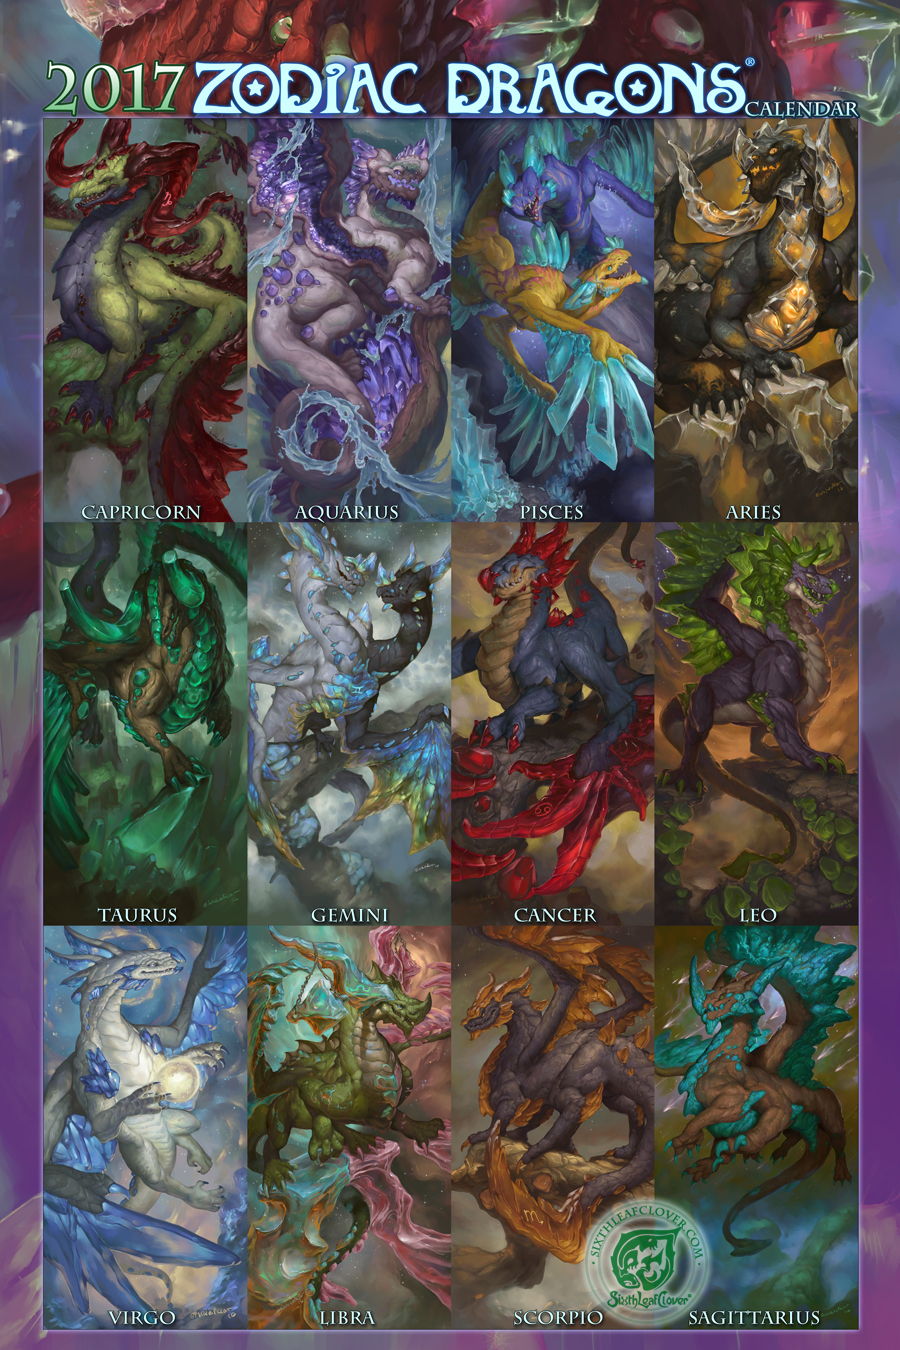 2017 Zodiac Dragons Collection